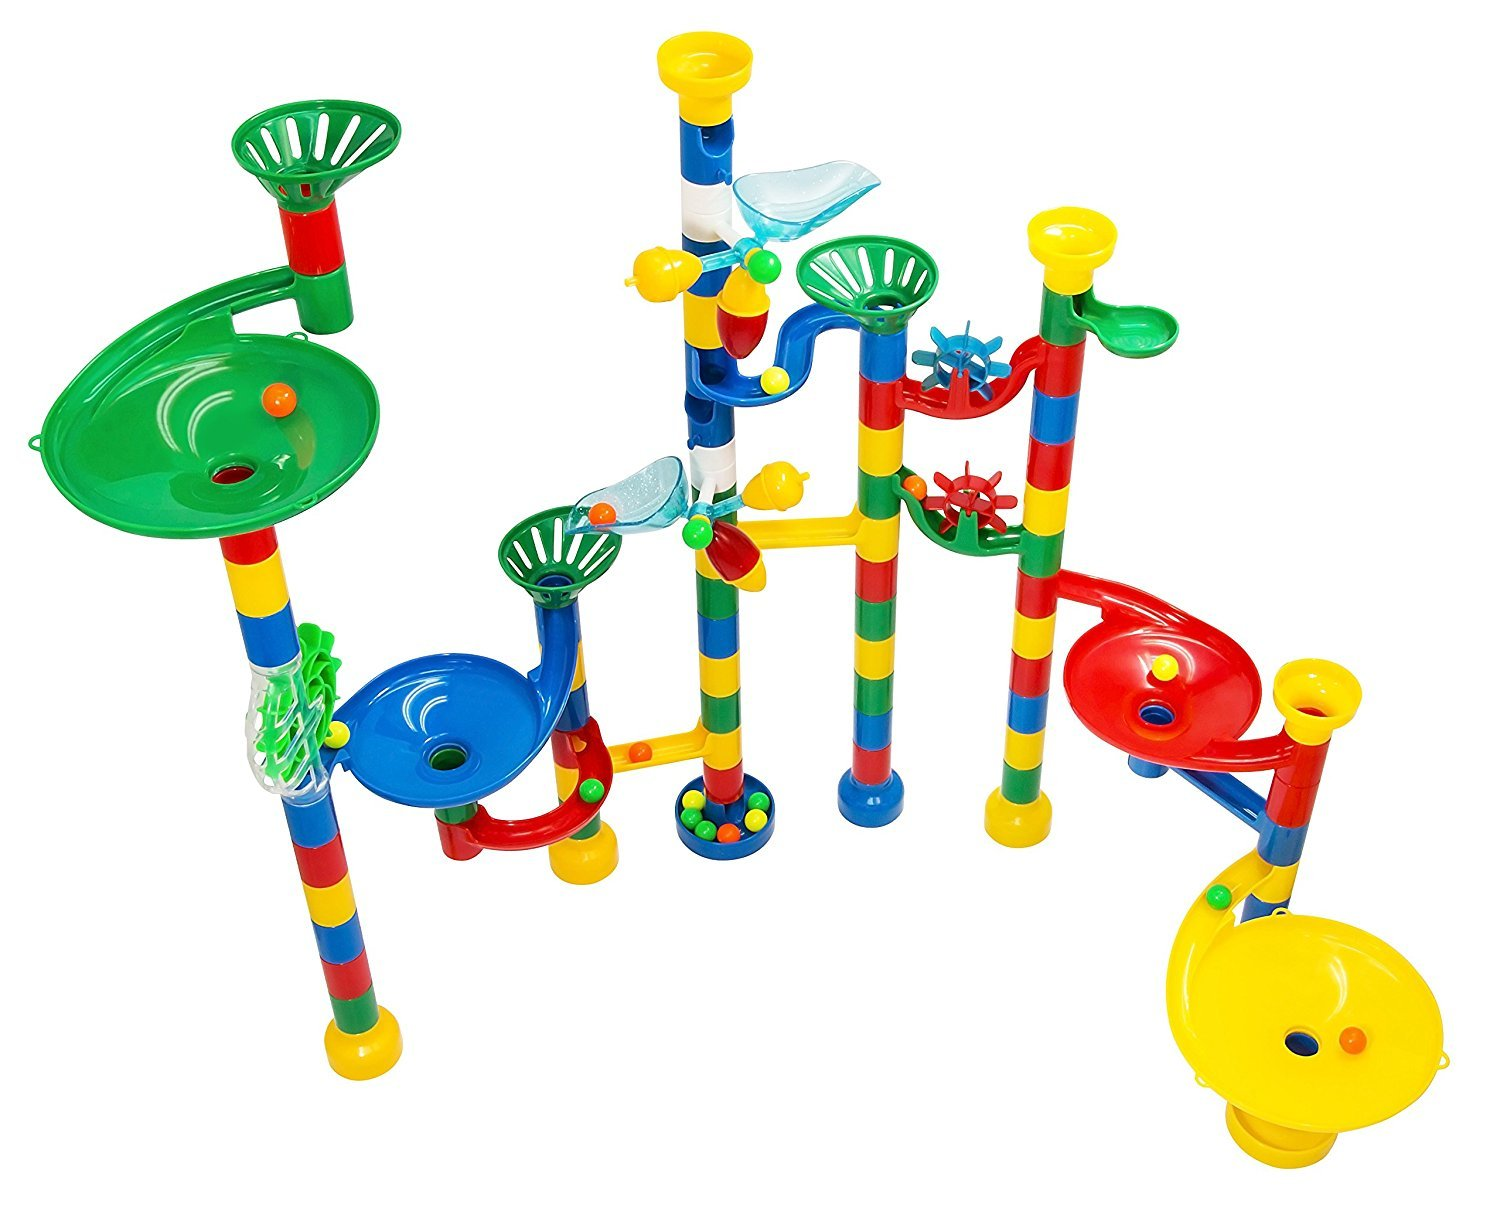 Marble Run Maze Ball Game - 85 Piece Marble Maze STEM Educational Toys for Kids Set Includes 50 Marbles Review